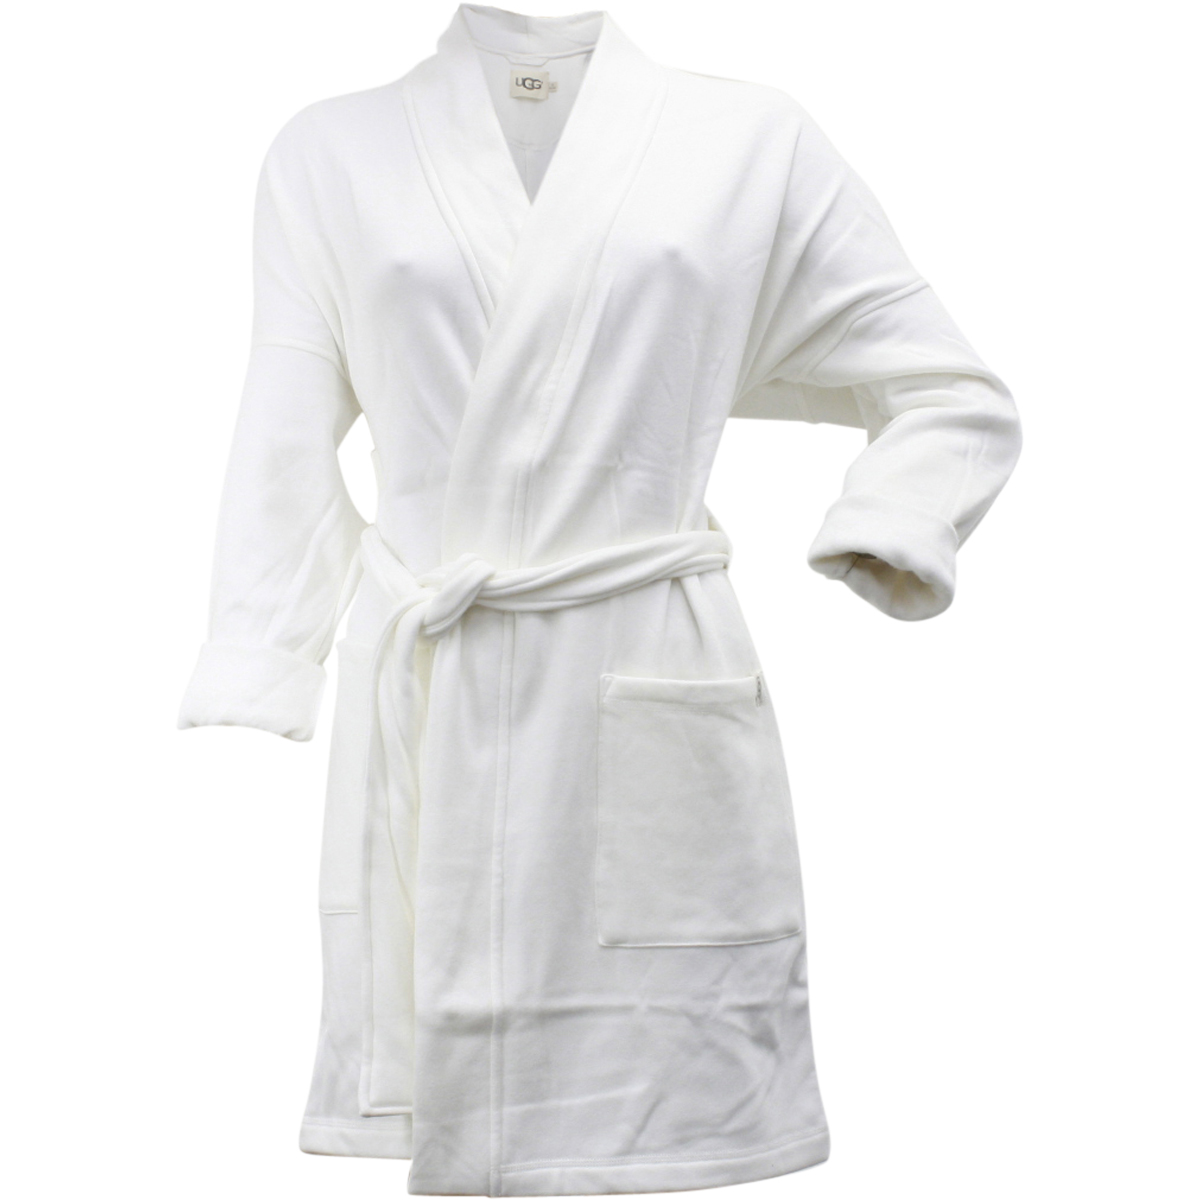 Ugg Women s Braelyn Relaxed Fit Fleece Lined Robe